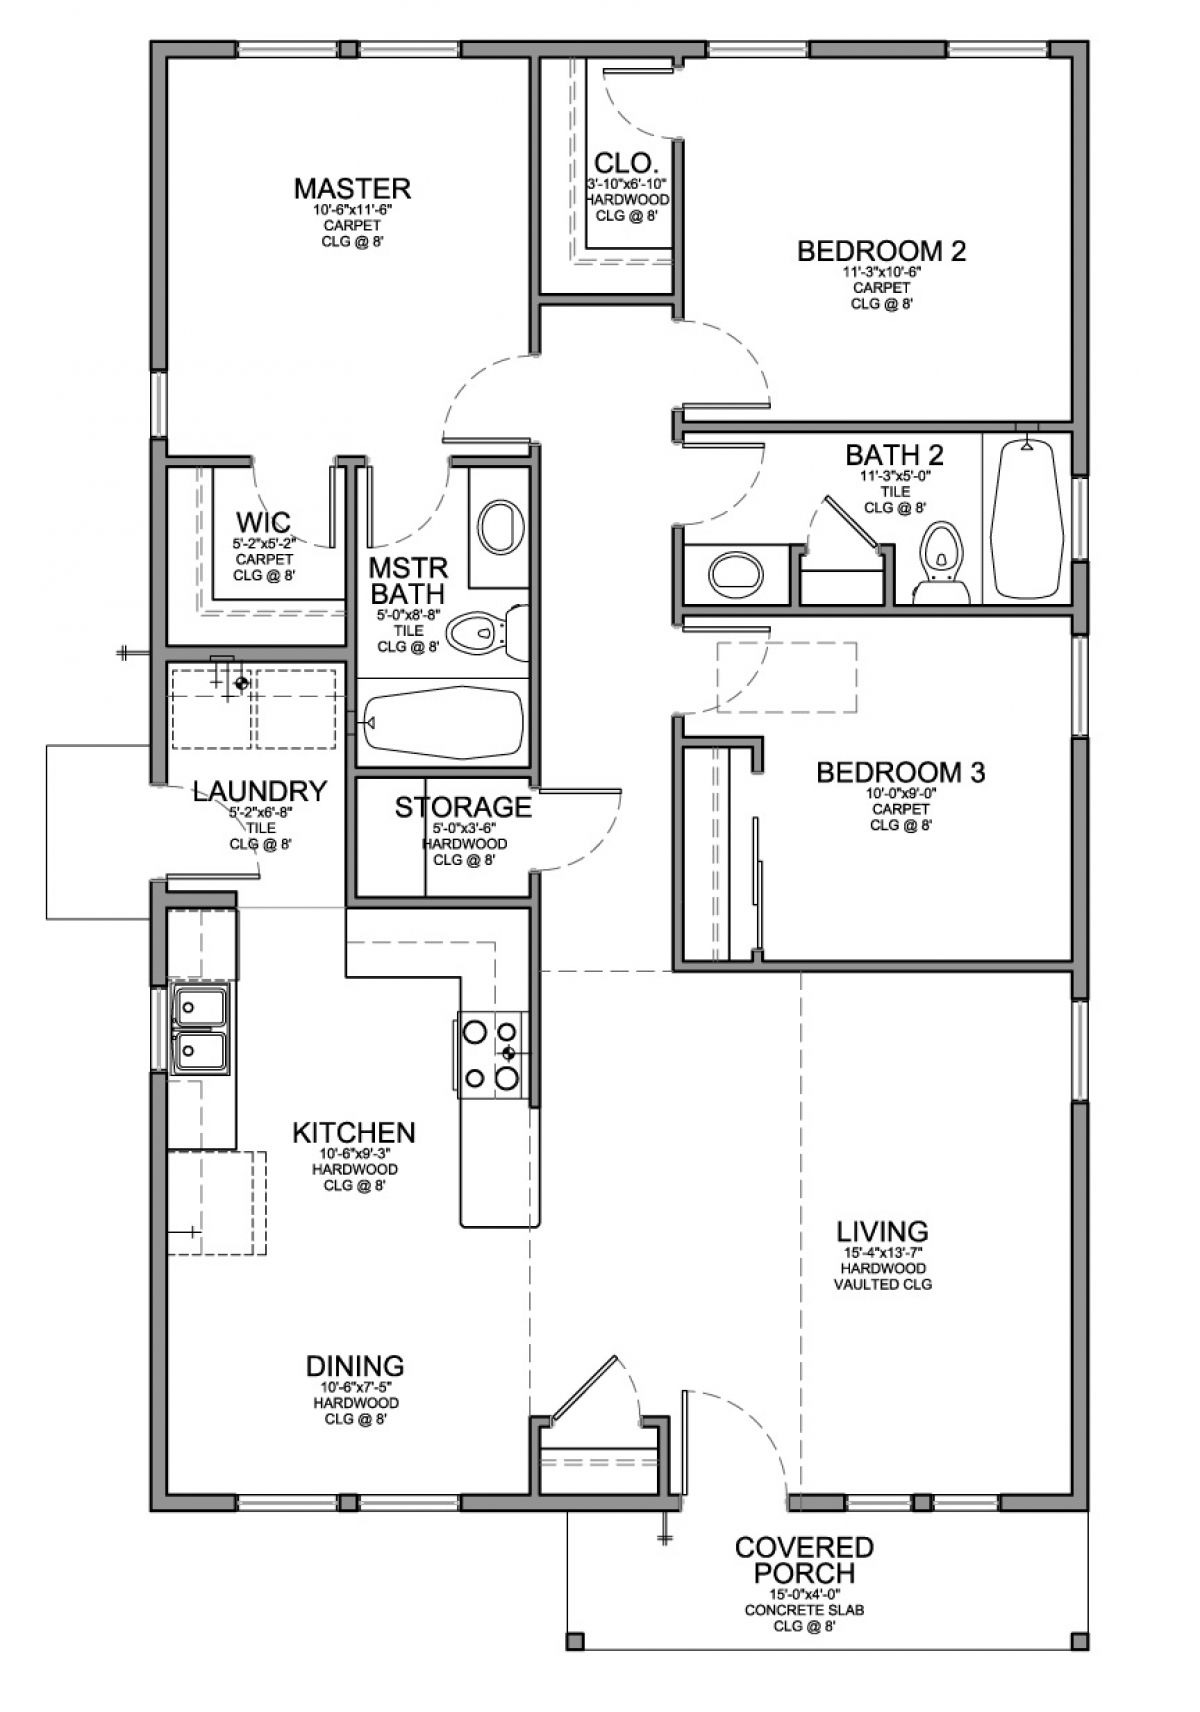 Cost to Build A 4 Bedroom House Best Of Floor Plans and Cost Build Plan for Small House Tamilnadu